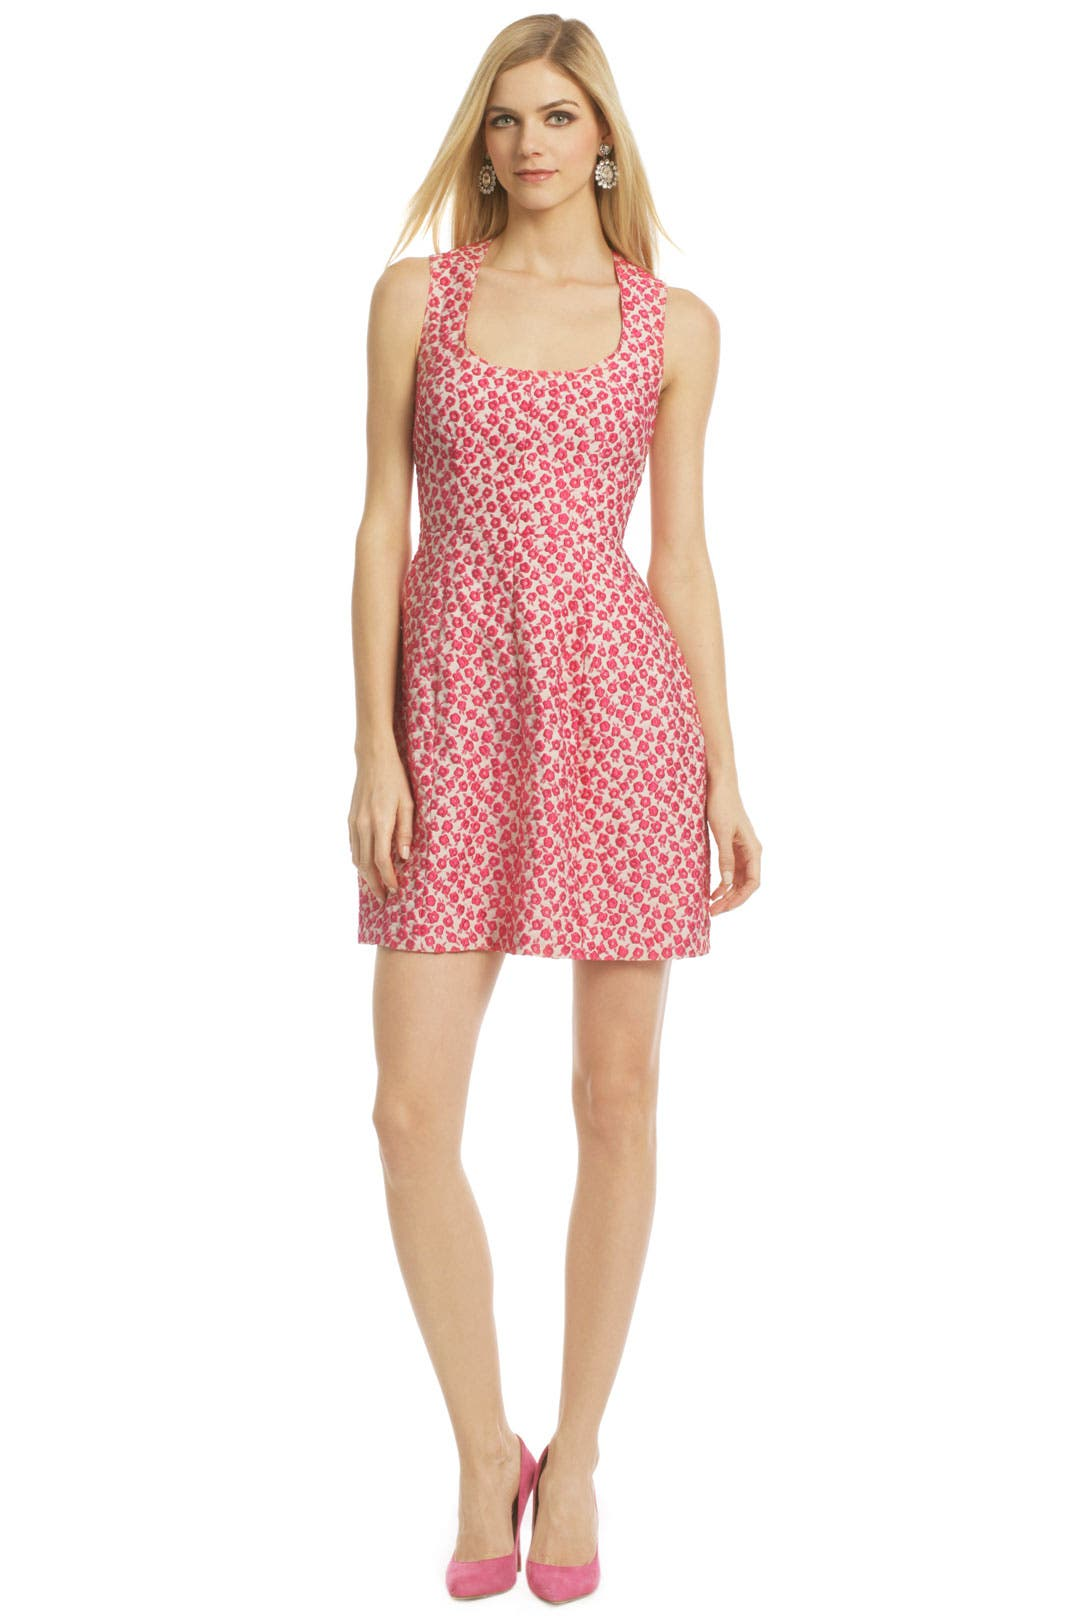 Follow Your Heart Dress by Moschino Cheap And Chic